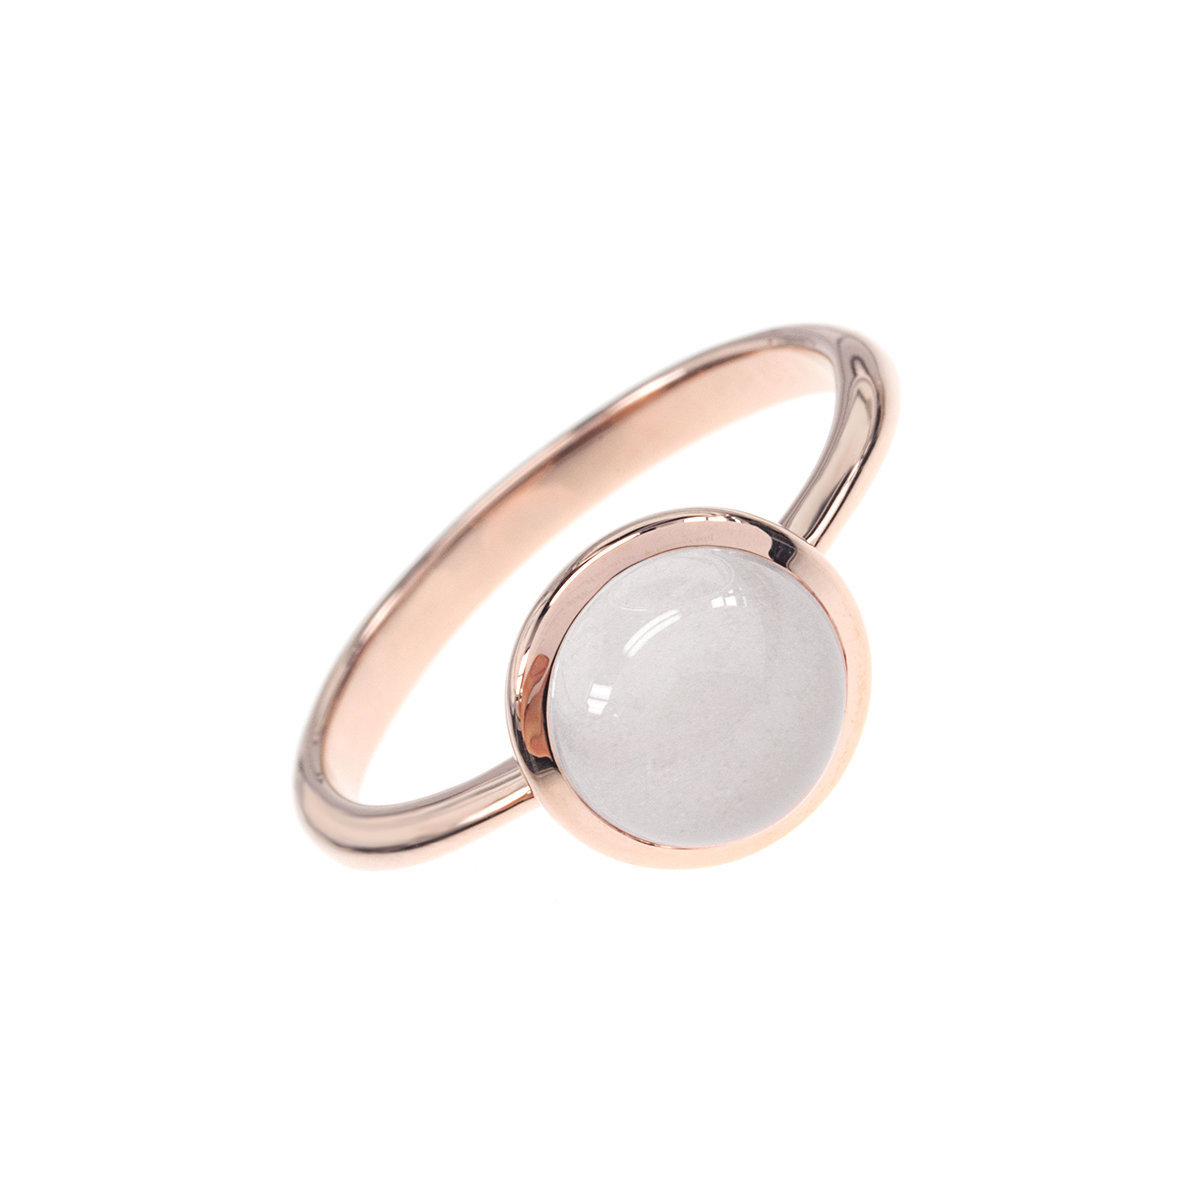 Lucky Stone Series- Rose quartz mounted 925 silver with rose gold plated ring